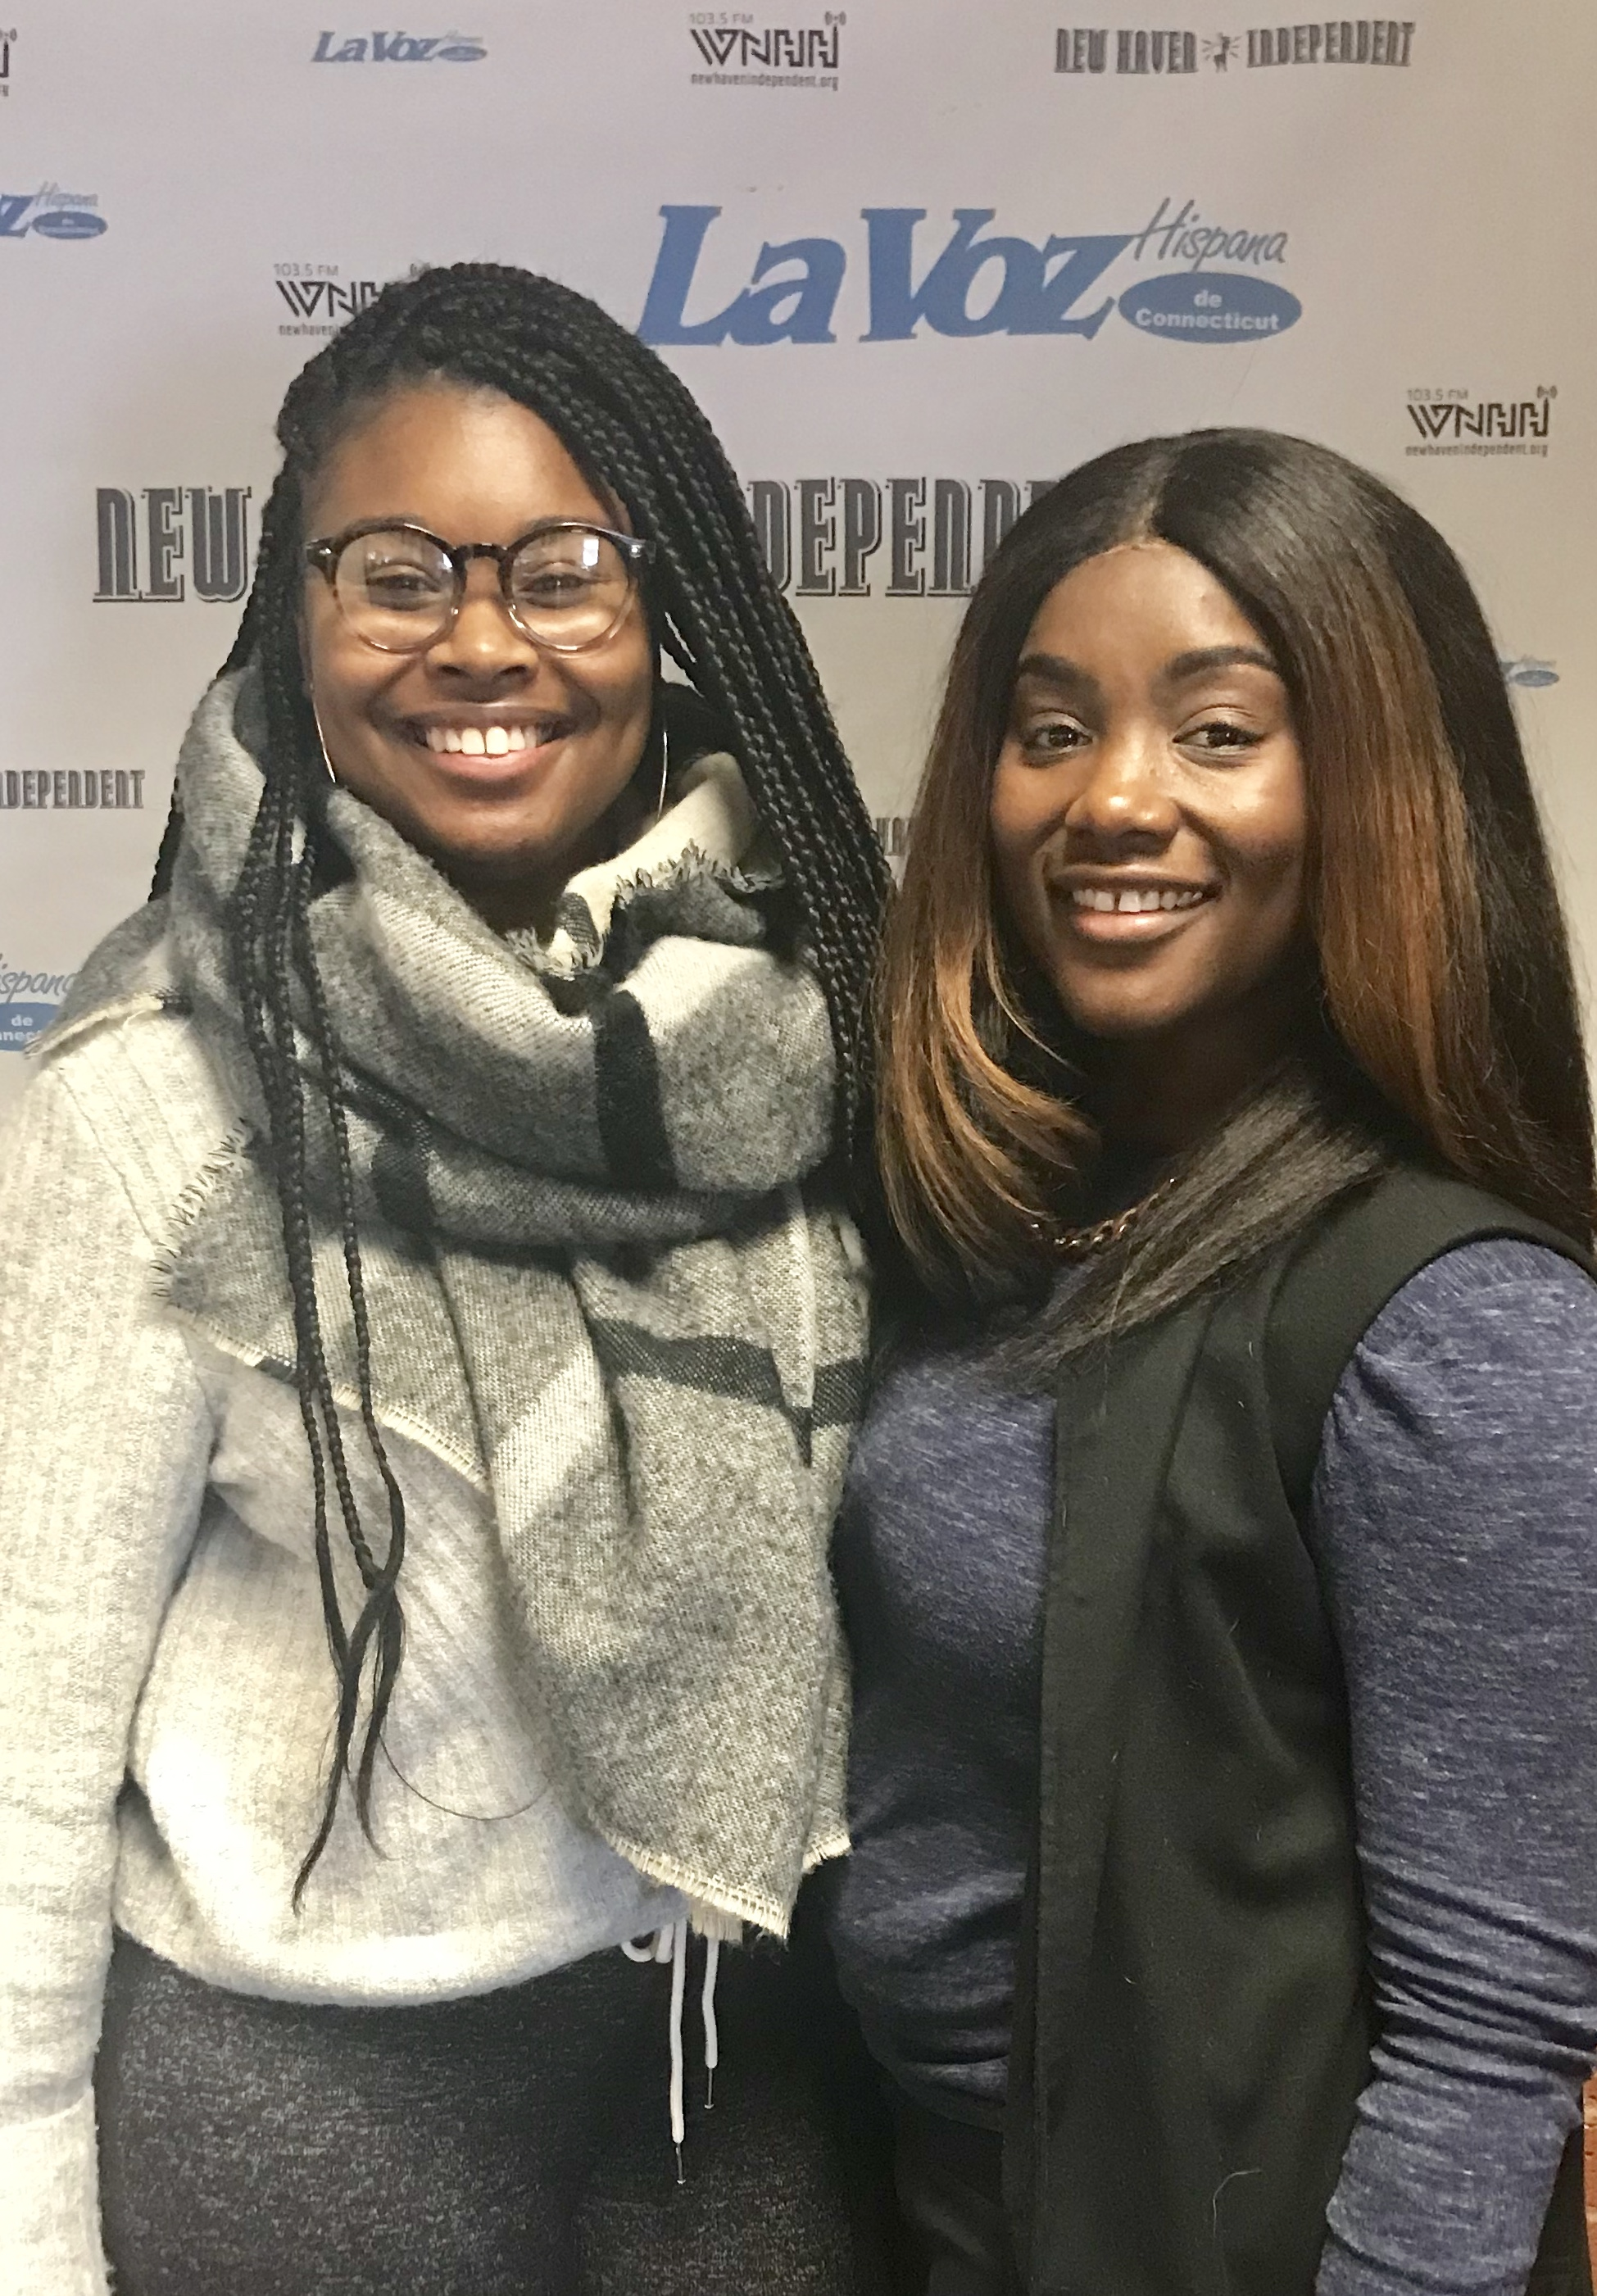 Host Mercy Quaye talks with Duanecia Evans about being fired from a job and rising to find purpose.